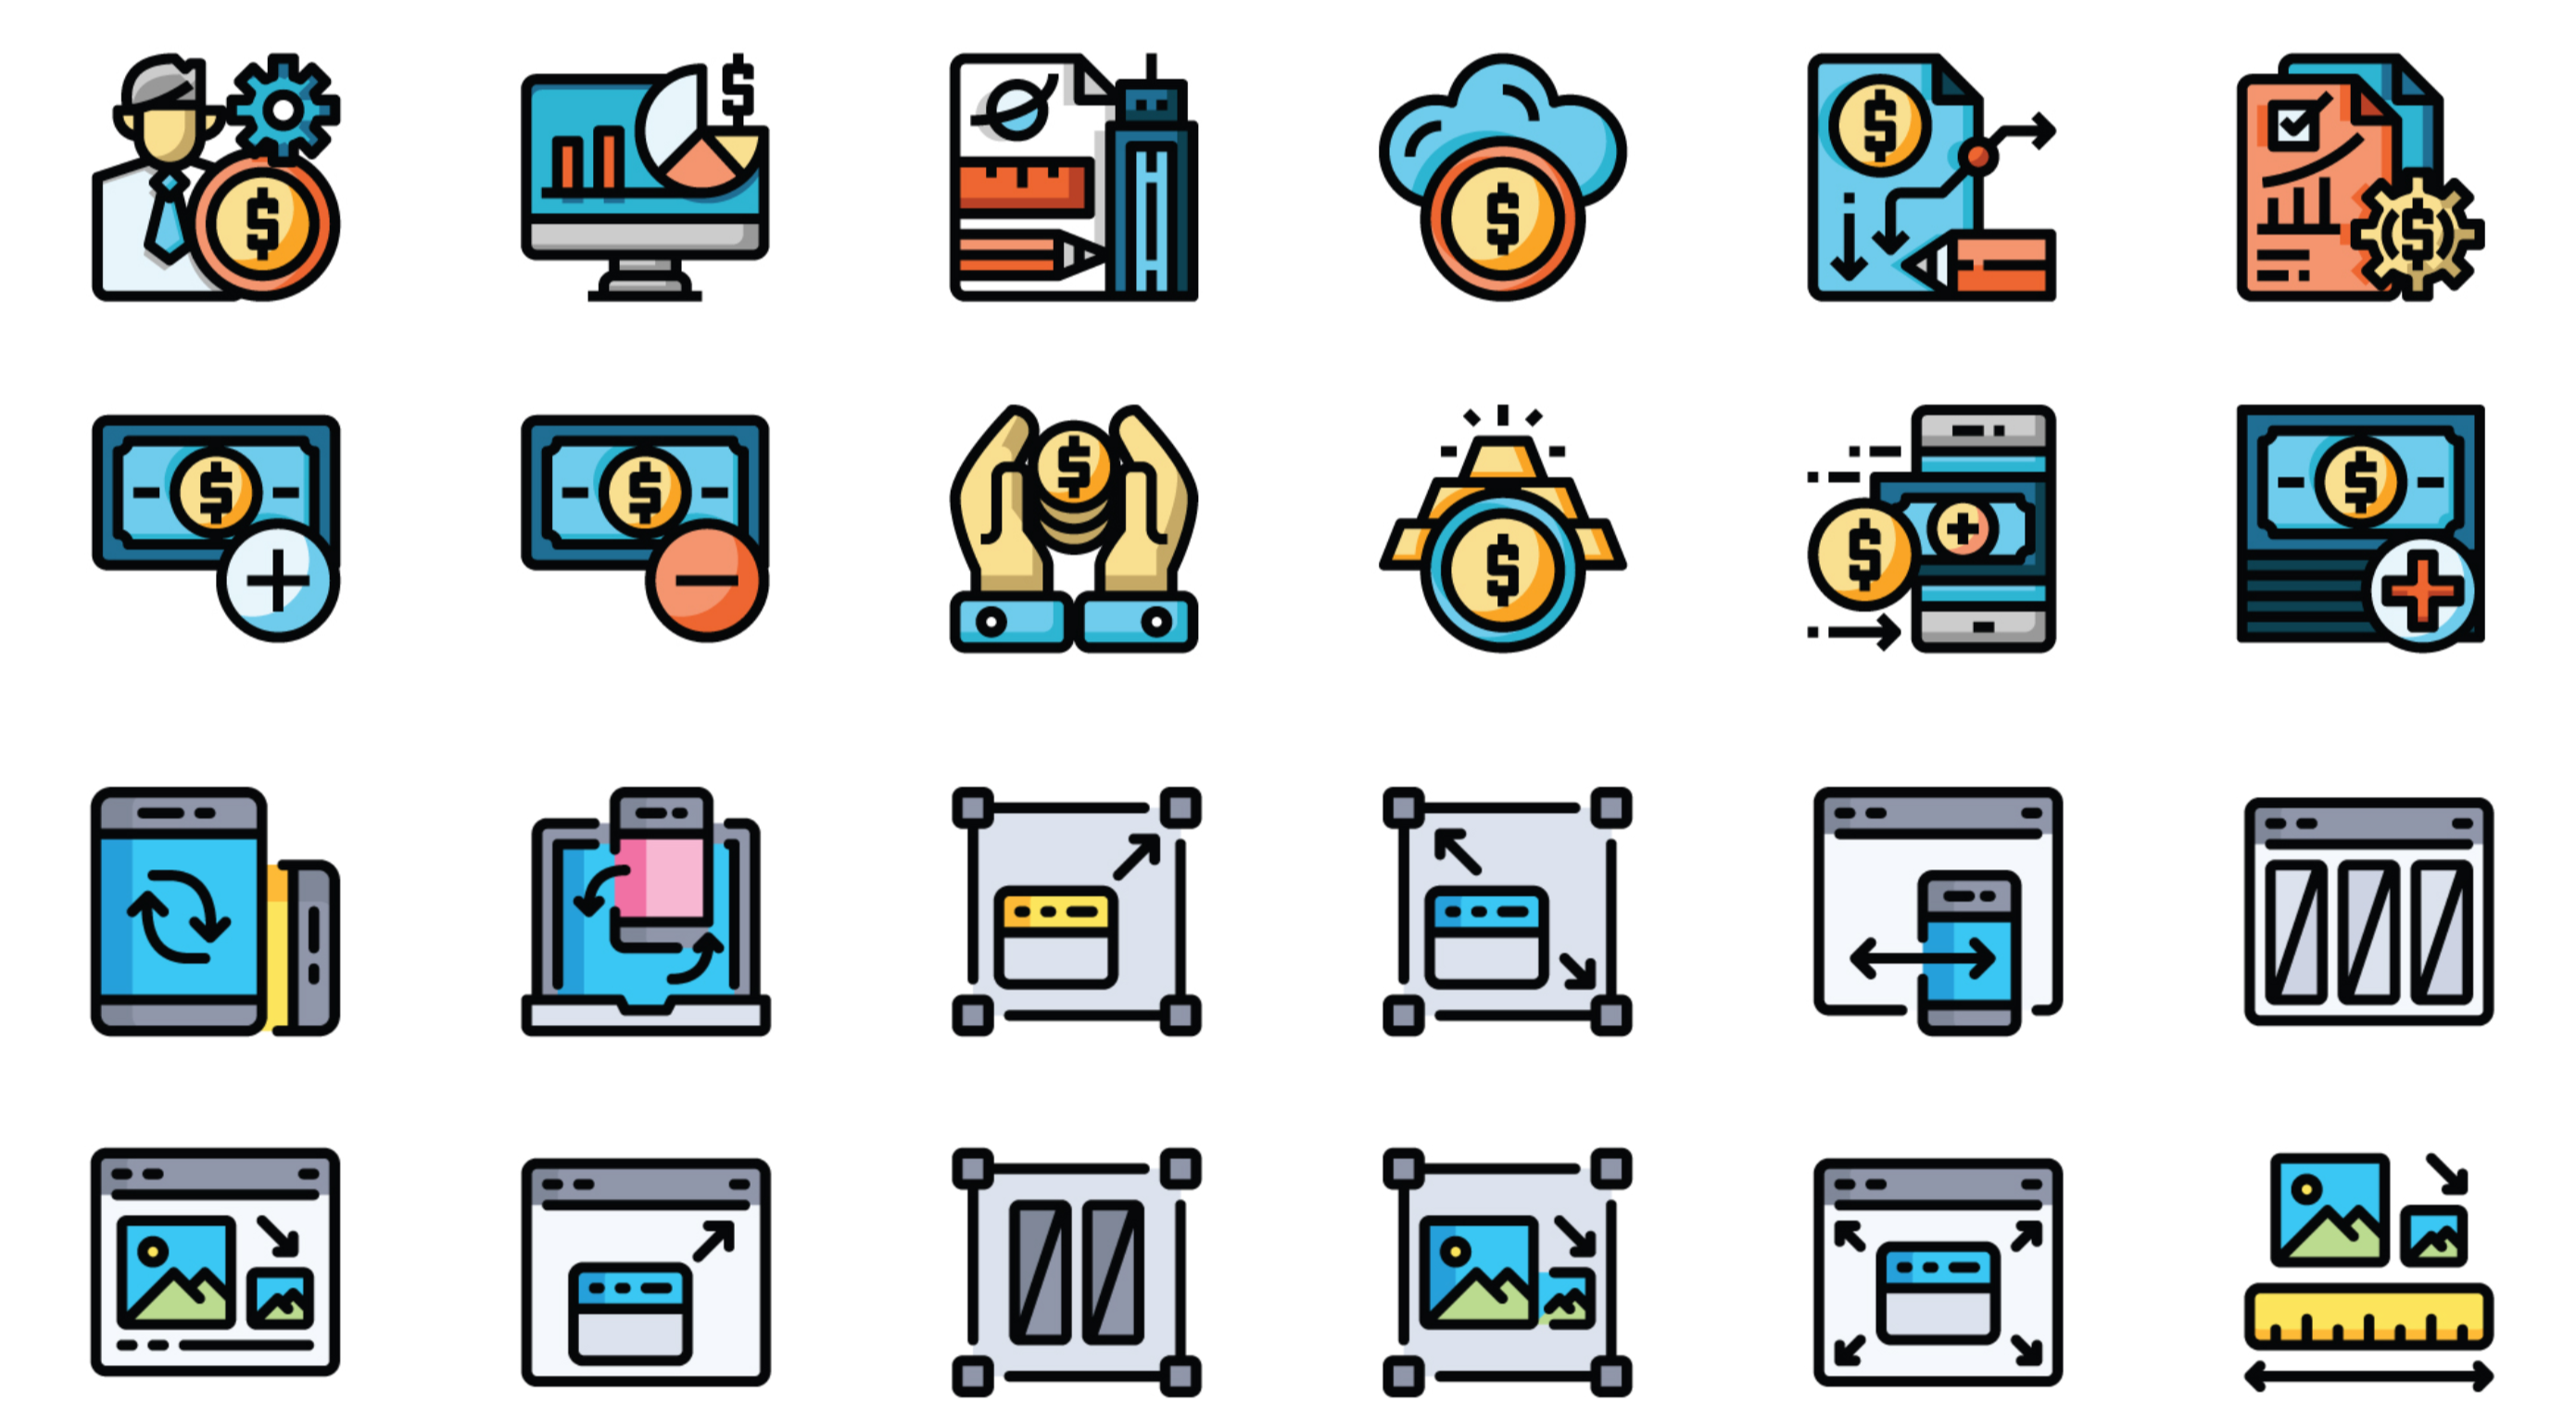 Free Download: 60 Free Investment and RWD Icons